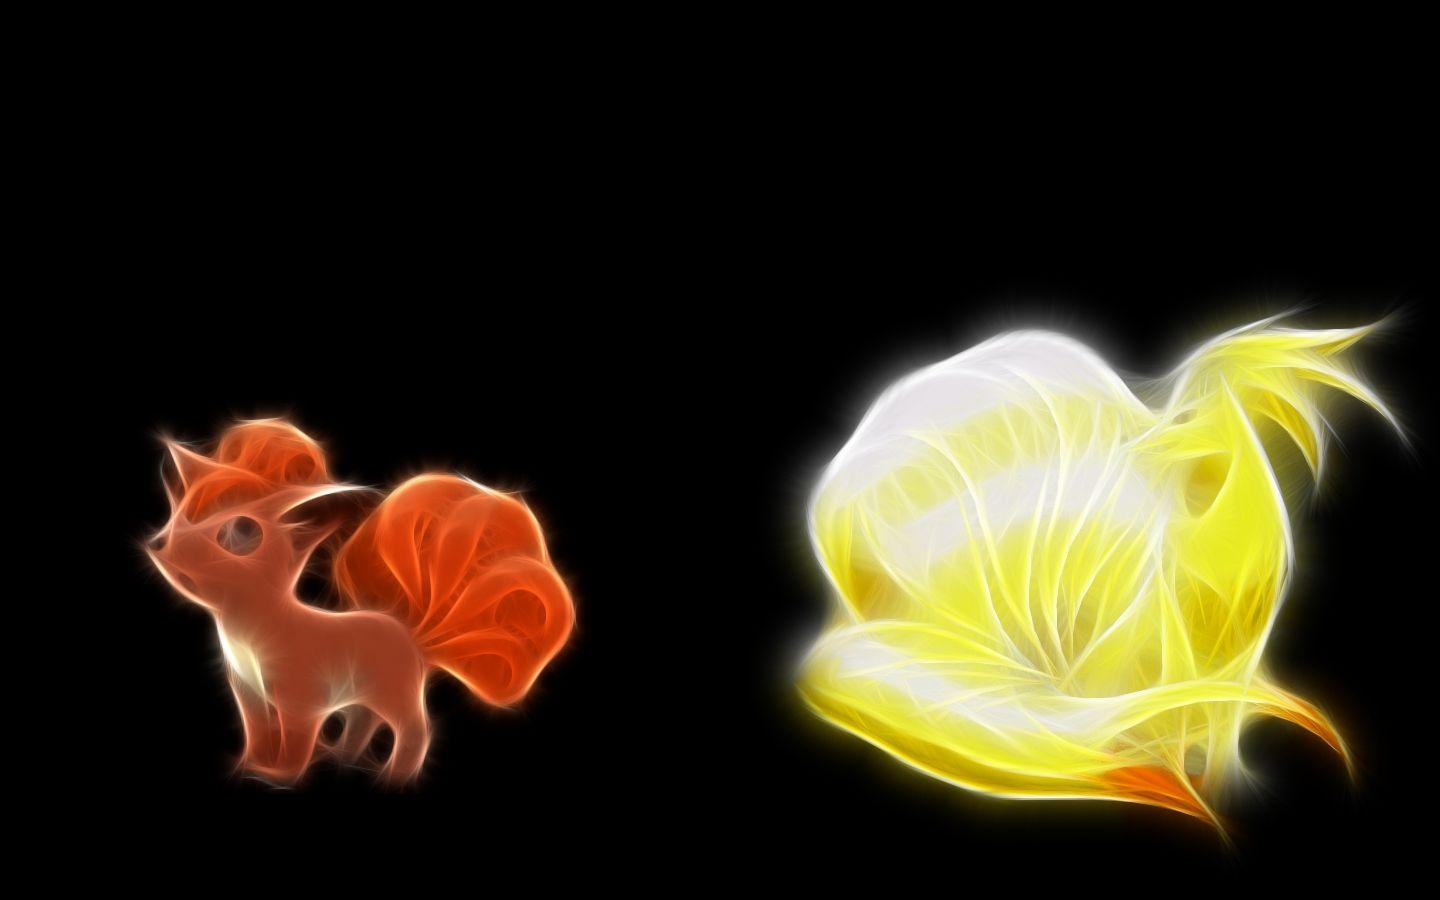 pokemon vulpix ninetails 1440x900 wallpaper High Quality ...